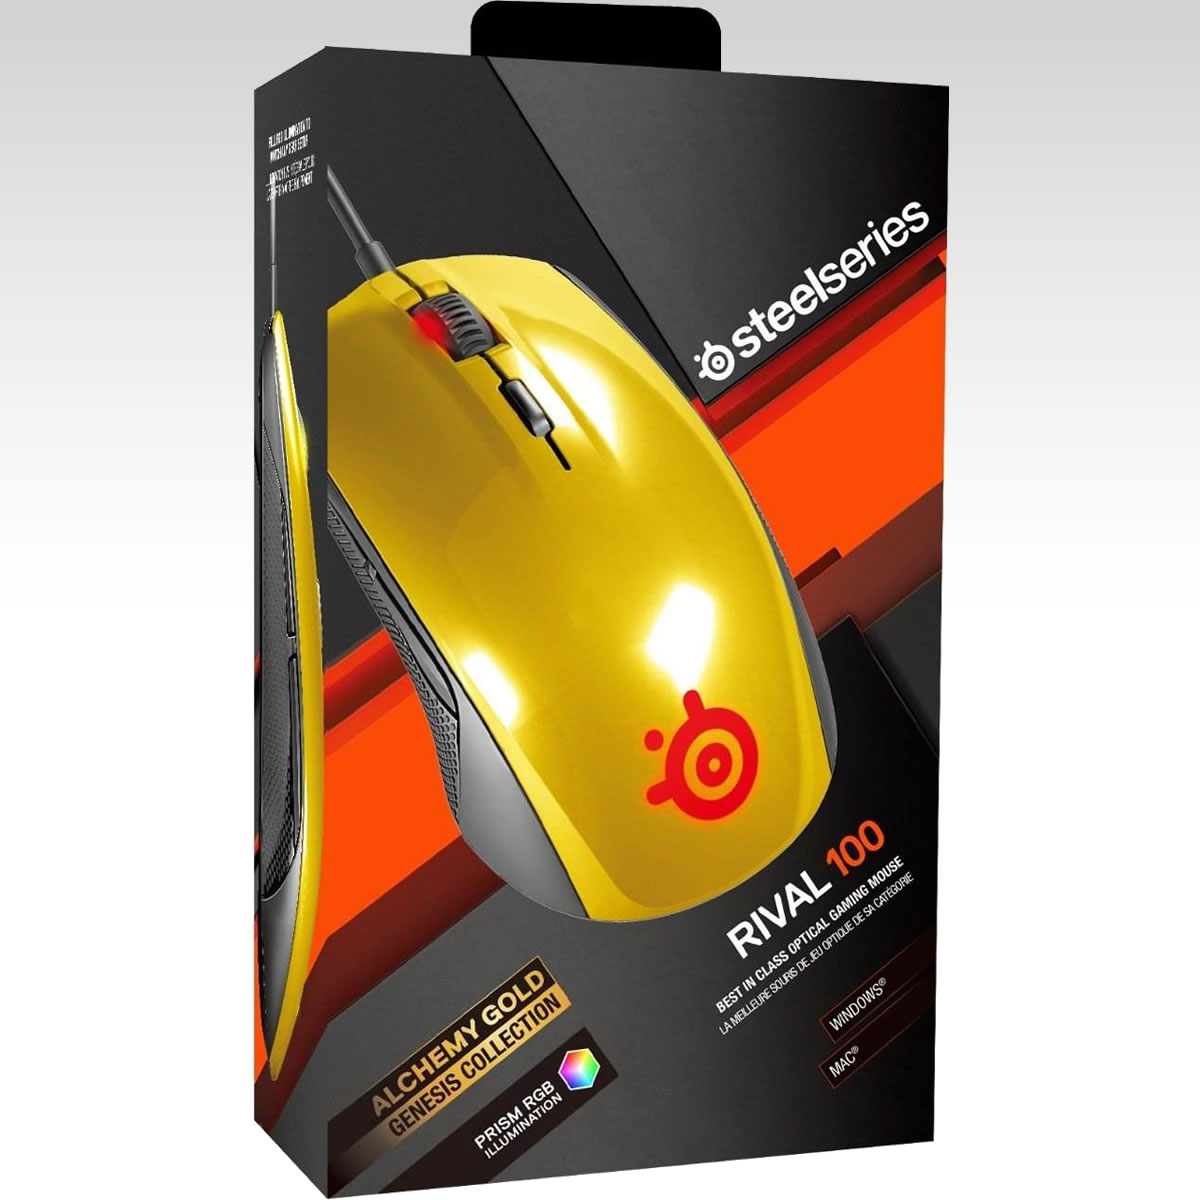 STEELSERIES - MOUSE RIVAL 100 ALCHEMY GOLD 62336 (PC, Mac)